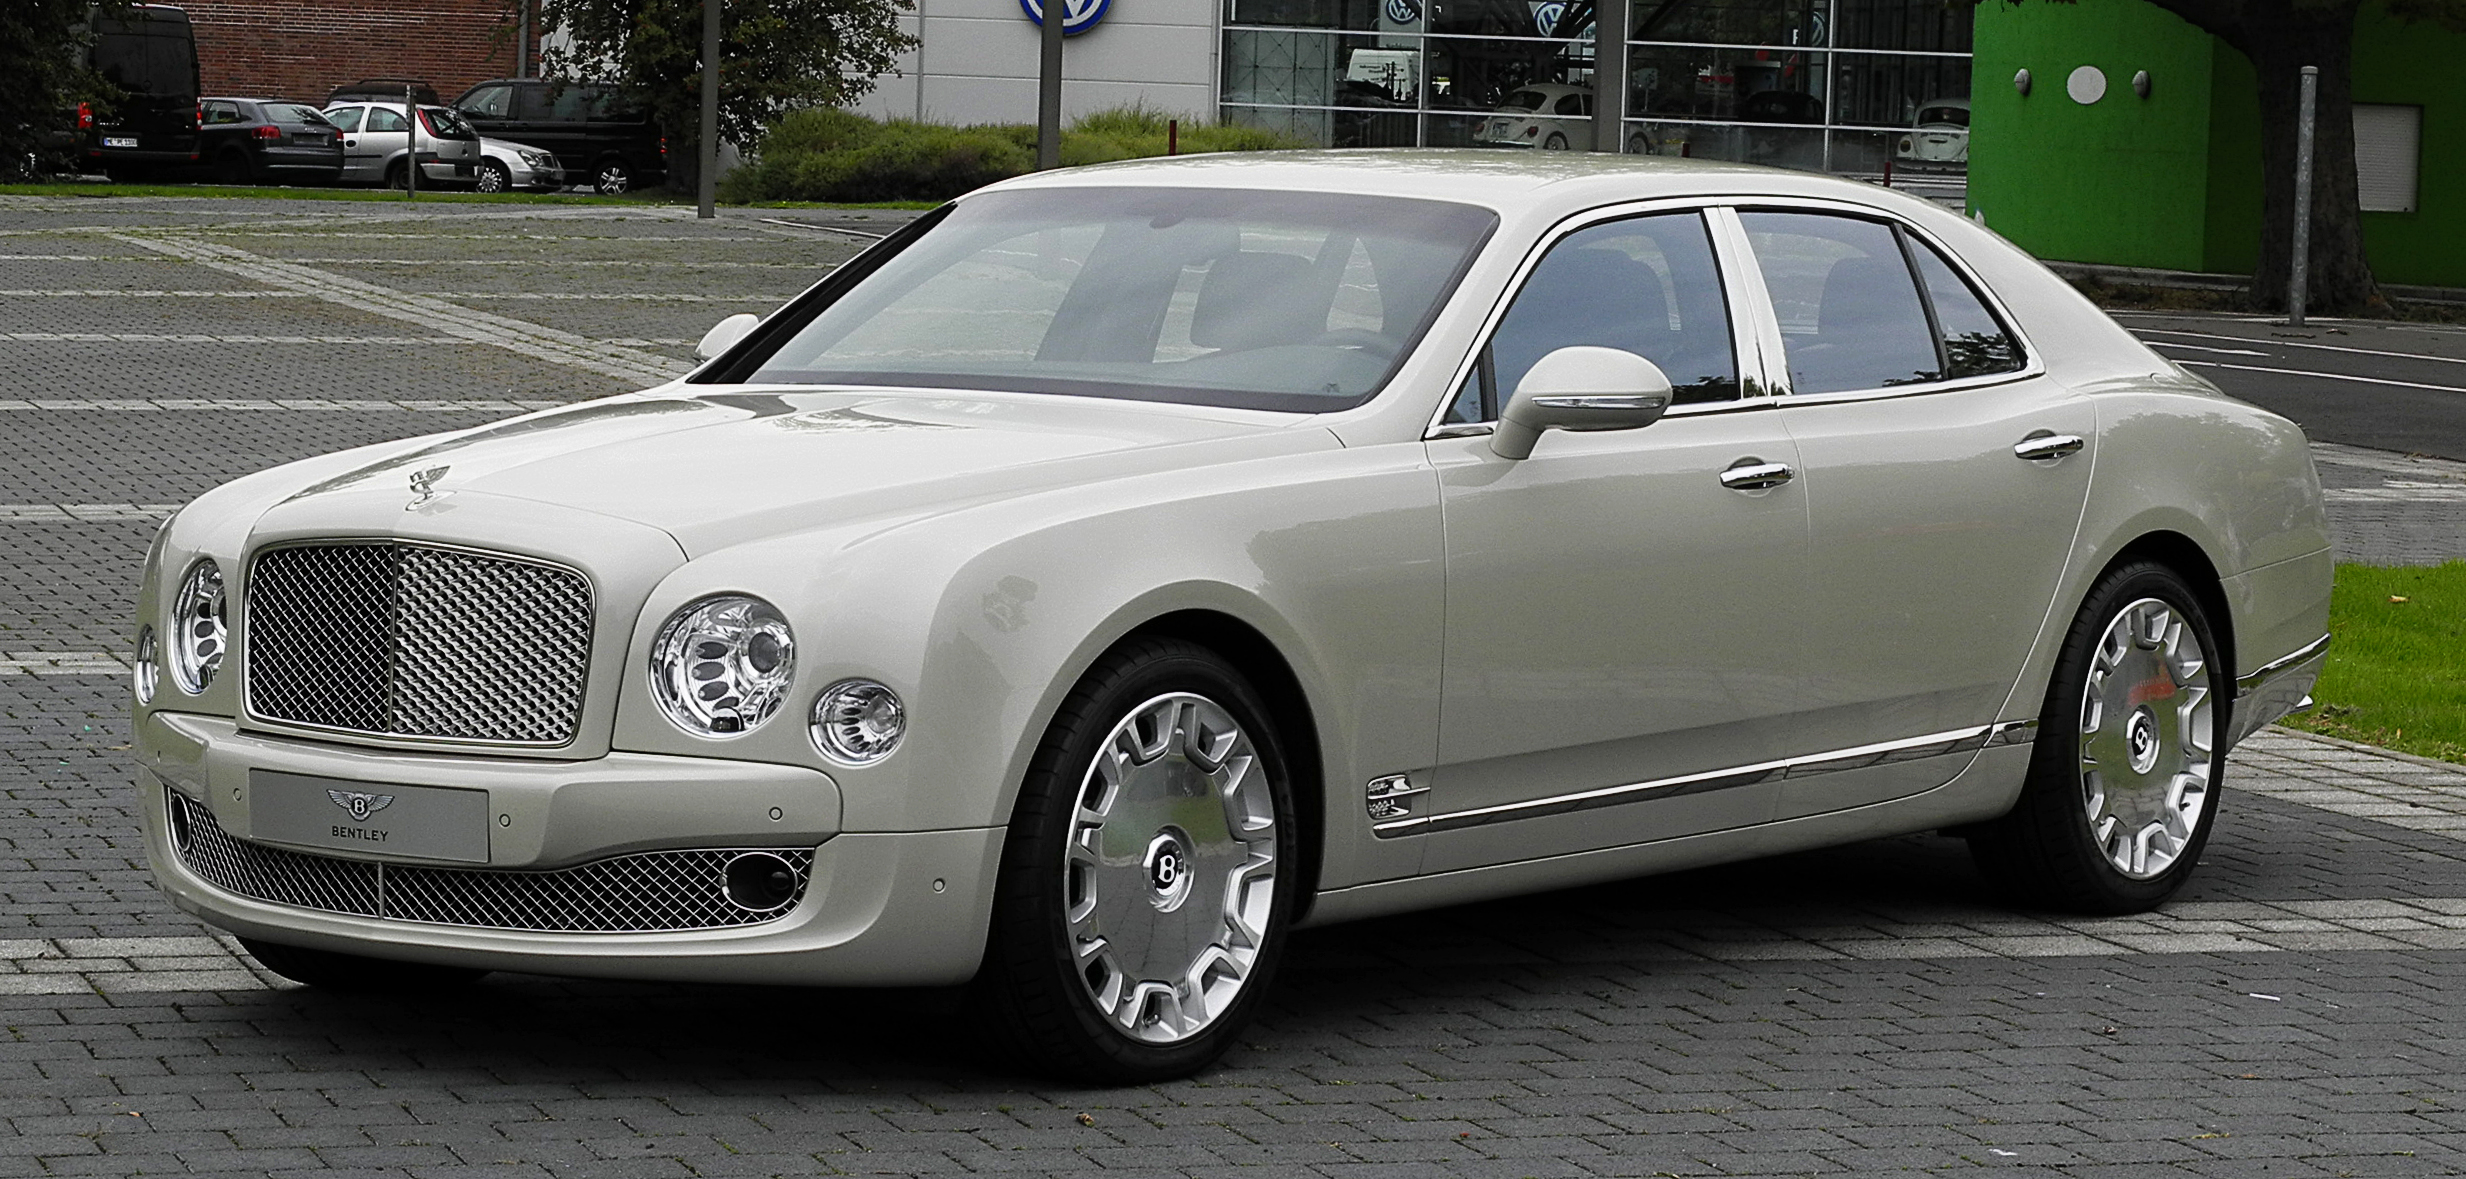 Bentley Mulsanne I Just Blew Out The Brain New Atlanta